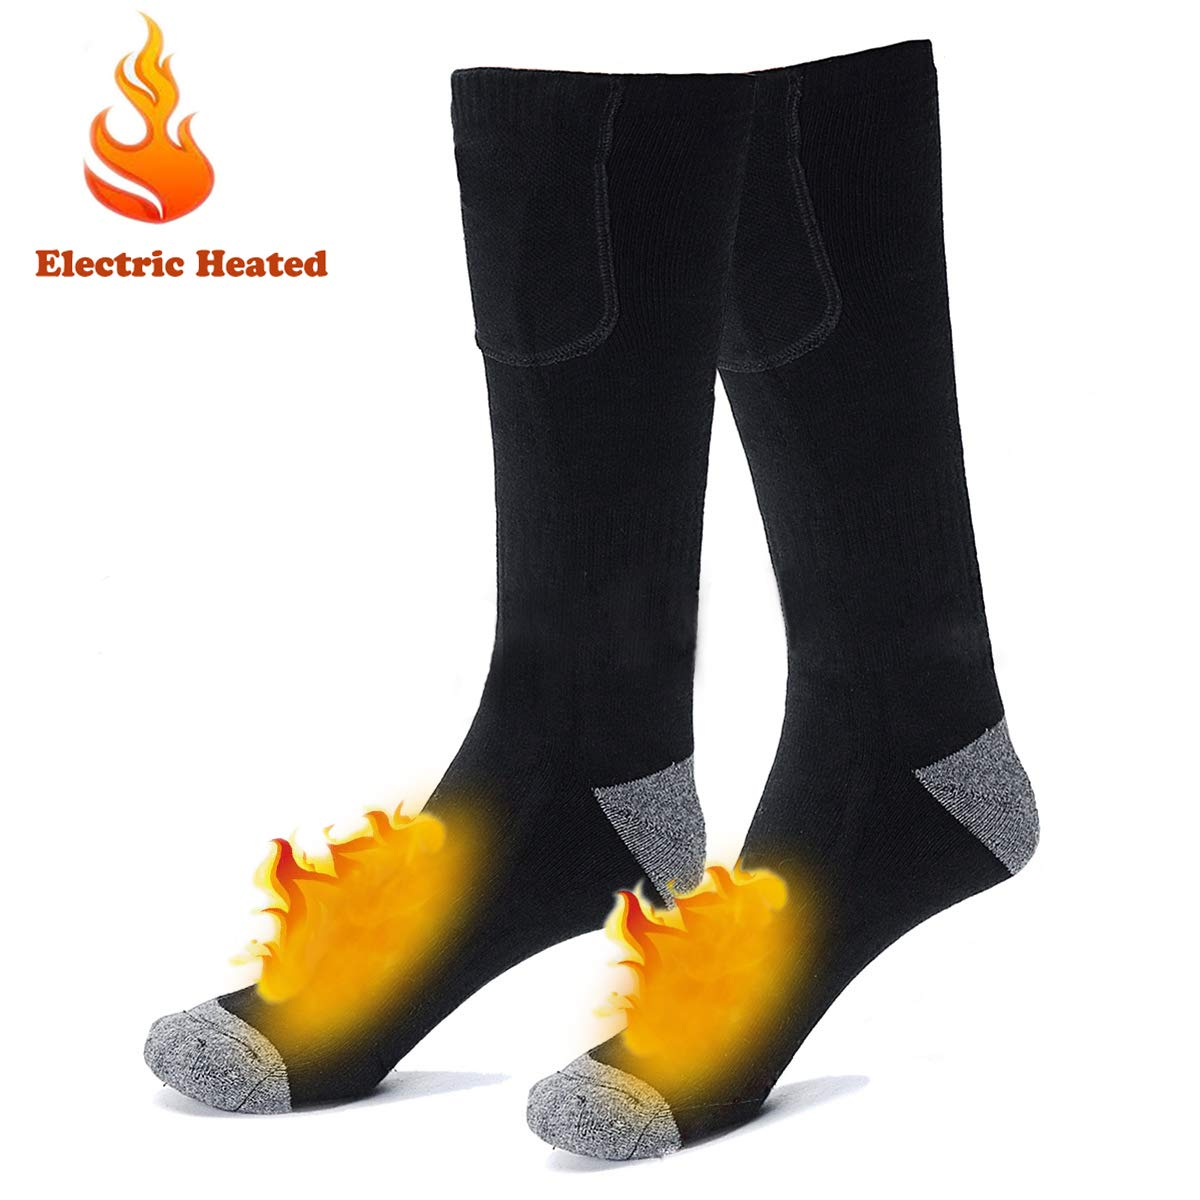 Electric Rechargeable Battery Heated Socks for Men Women,Winter Warm Thermo-Socks Outdoor Sports Ski Heating Sox for Cold Feet Thermal Socks Foot Warmer ... by Pokerking